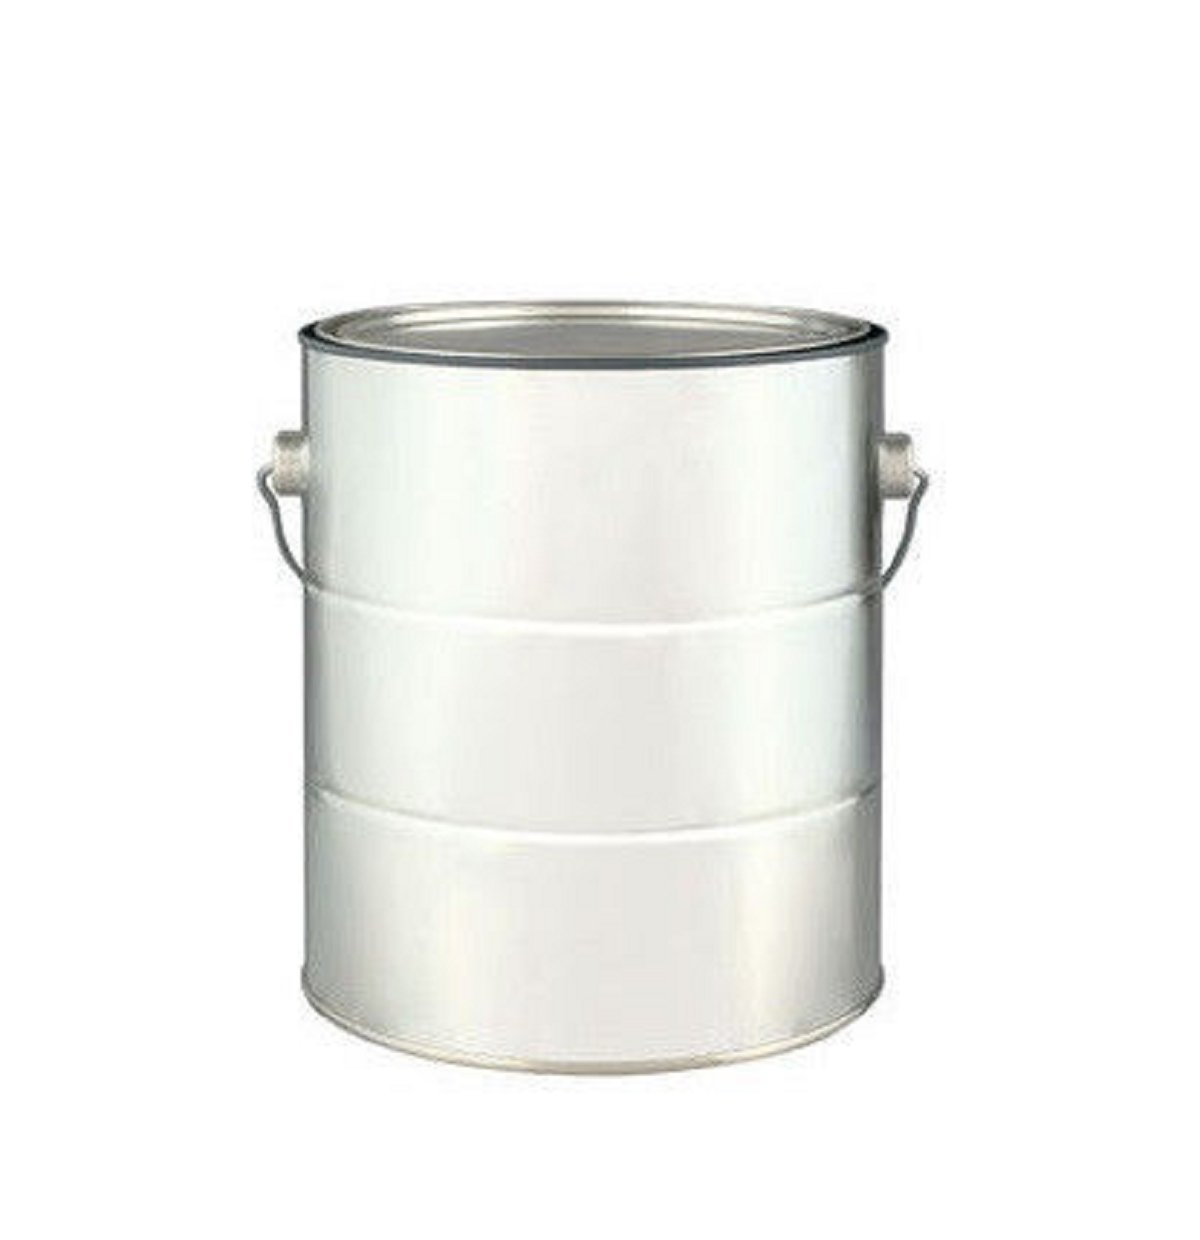 USA Premium Store EMPTY 1 GALLON PAINT CAN with LID and Handle